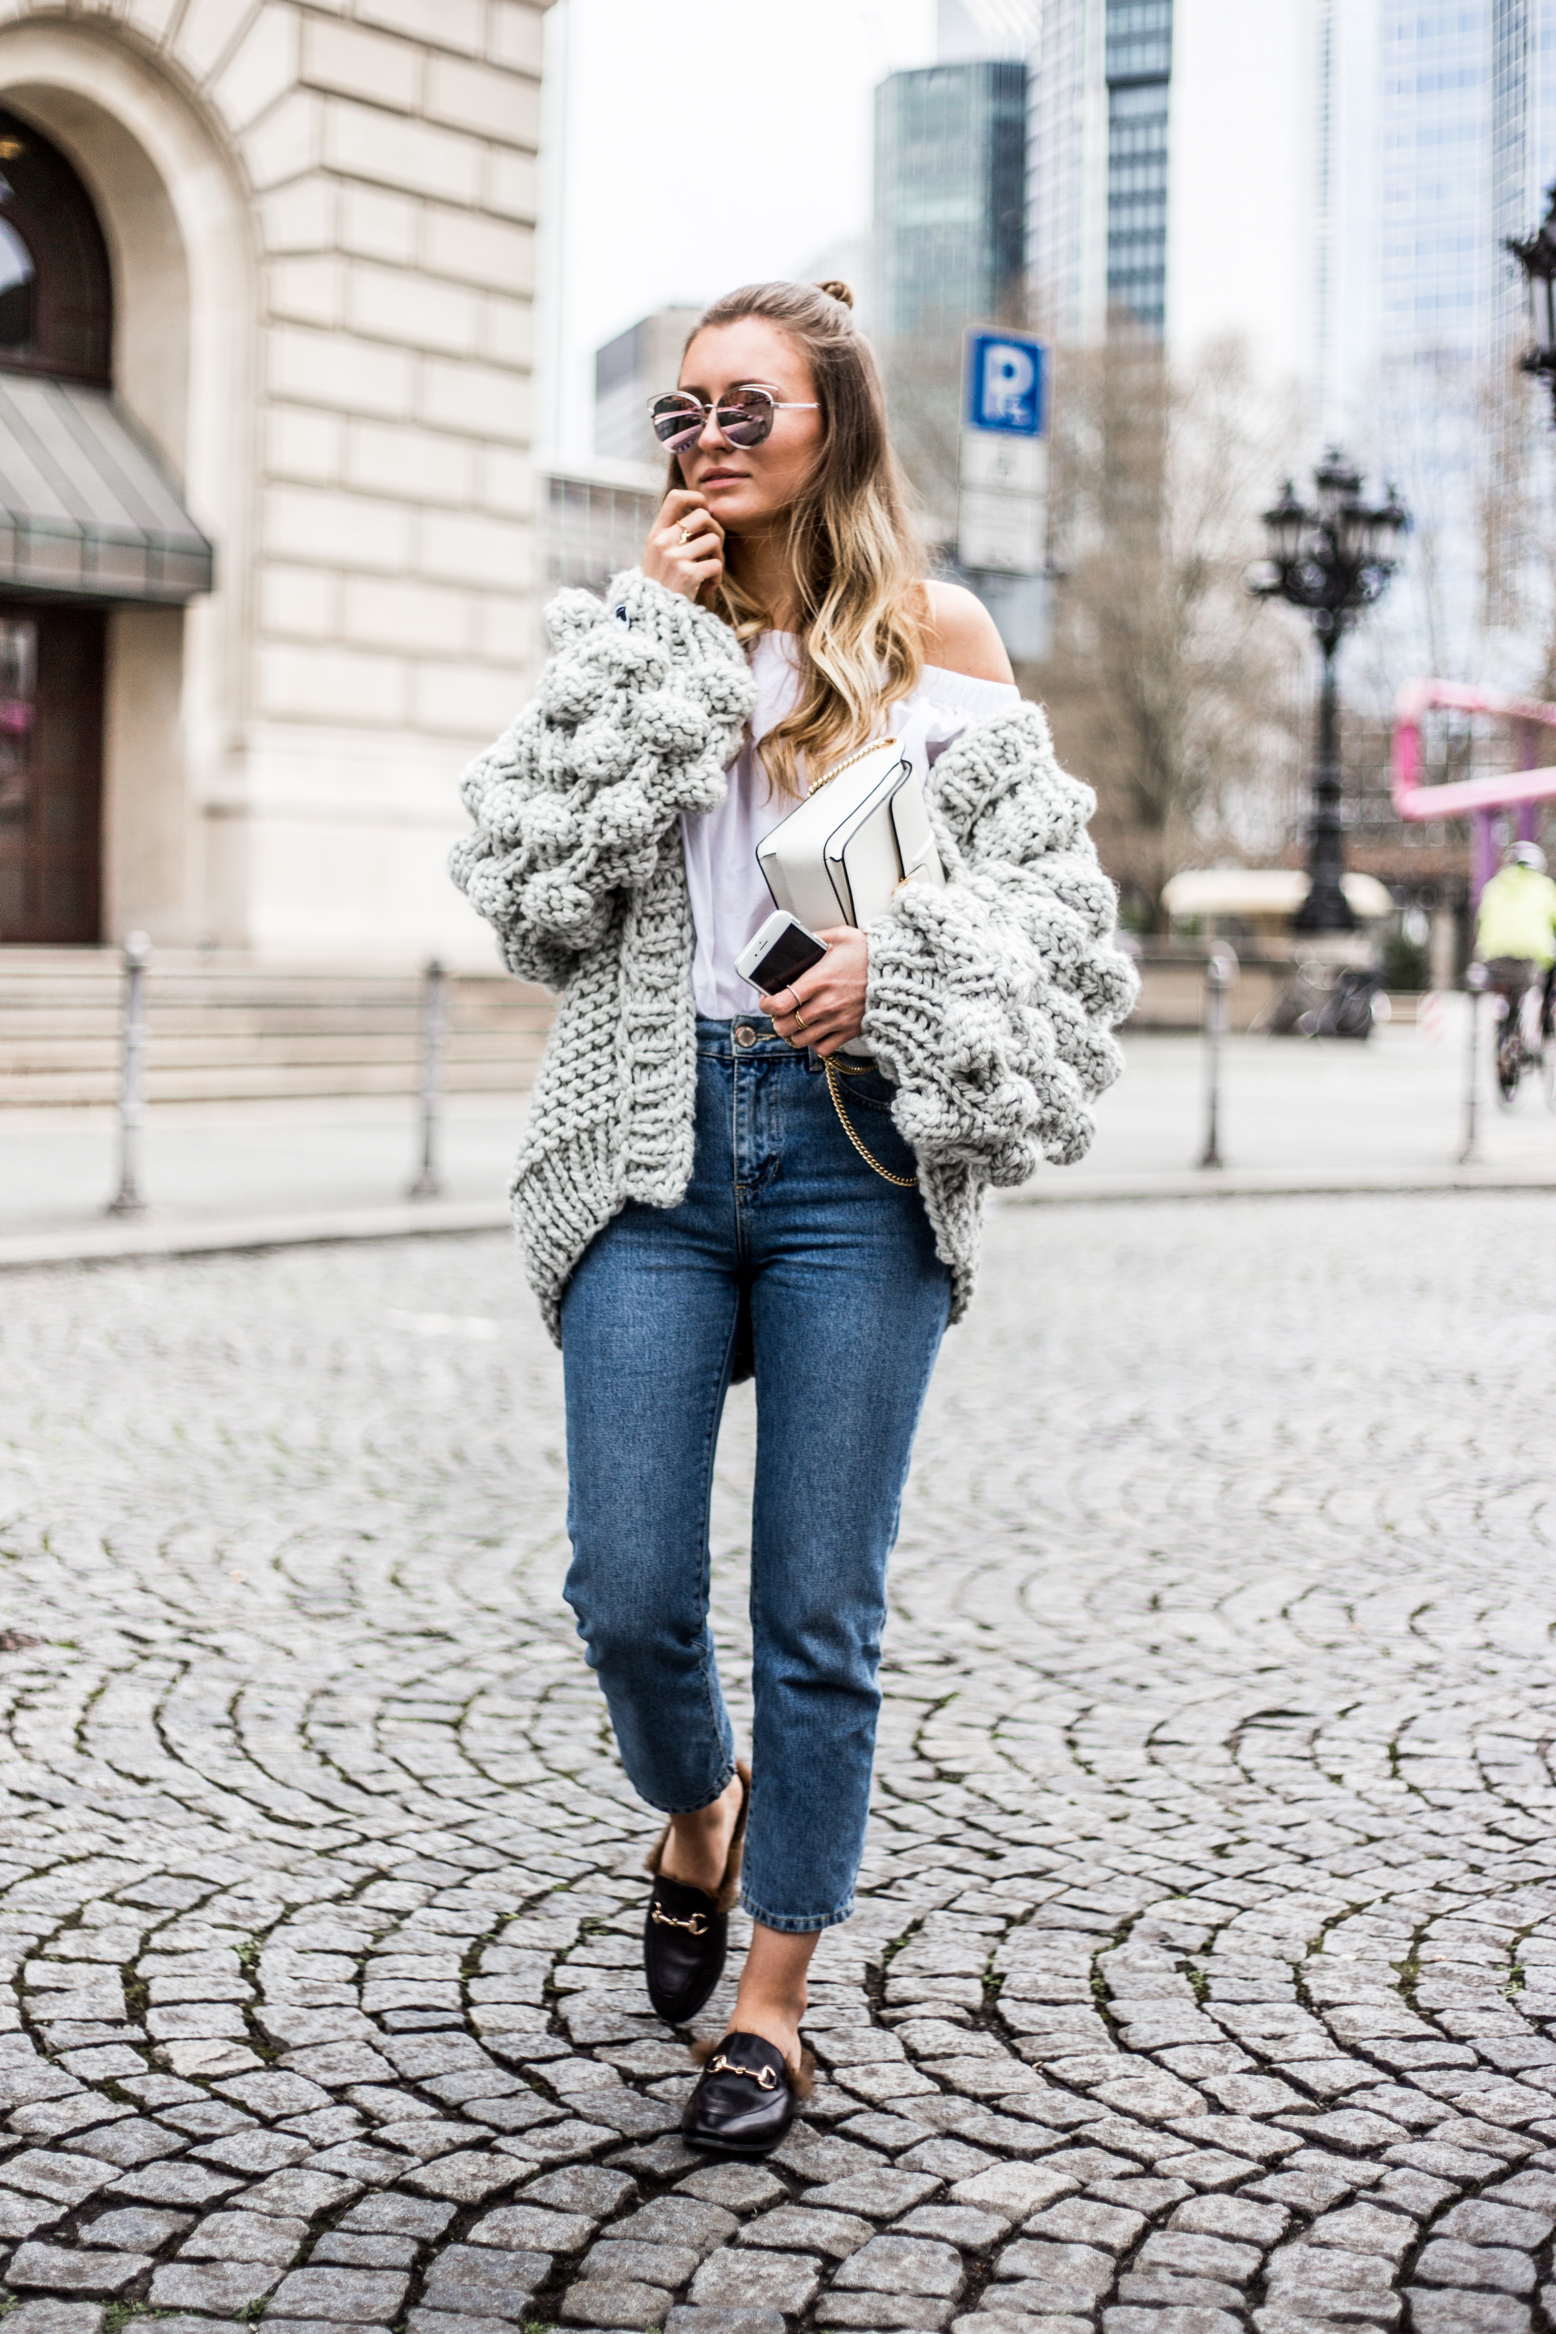 chunky-knit-cardigan-livia-auer-outfit-3928